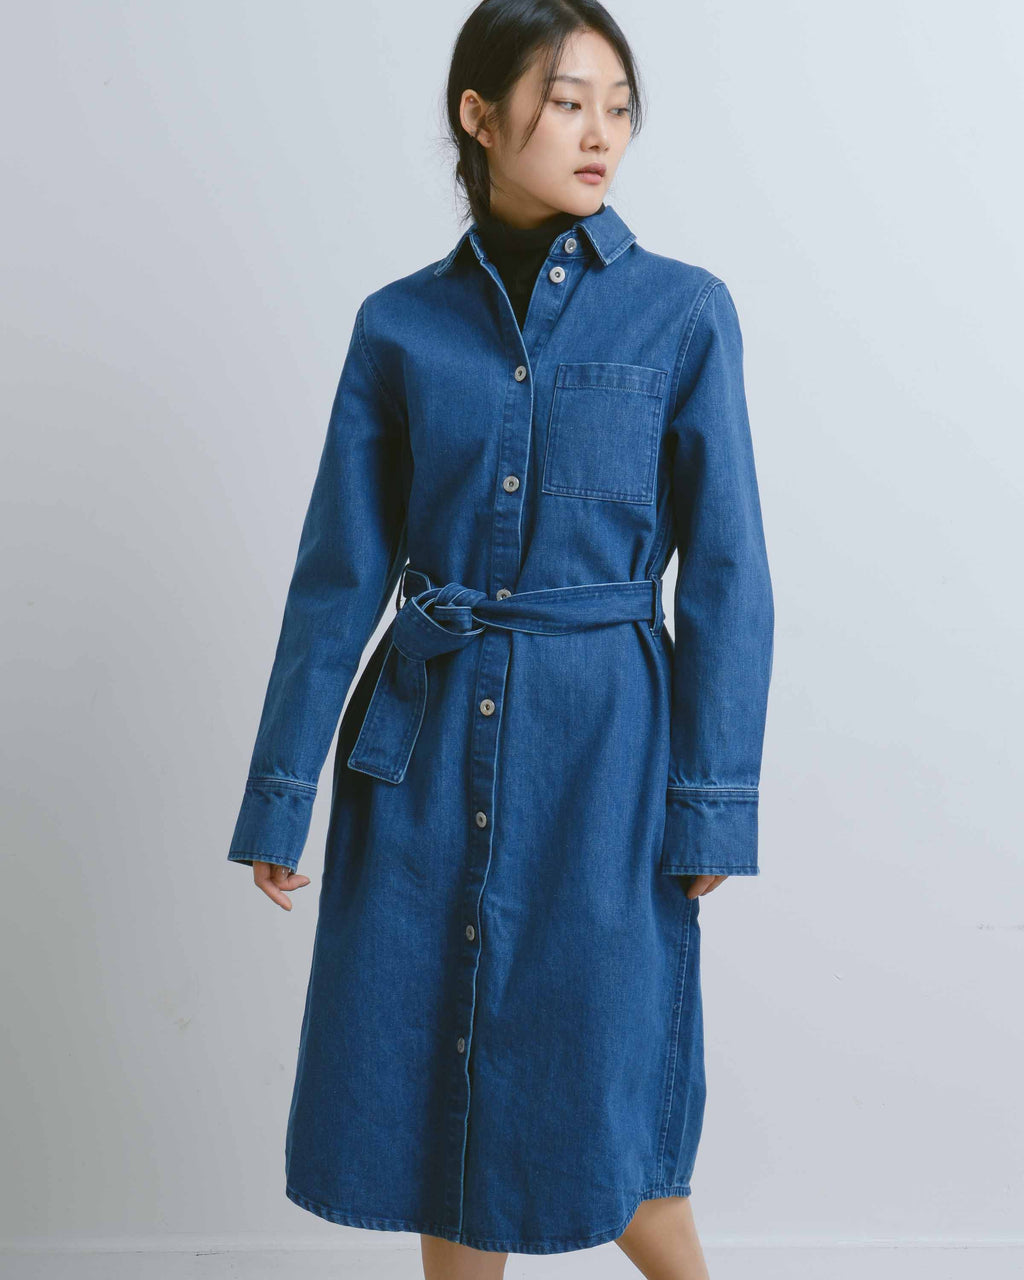 Denim Contemporary Shirt Dress